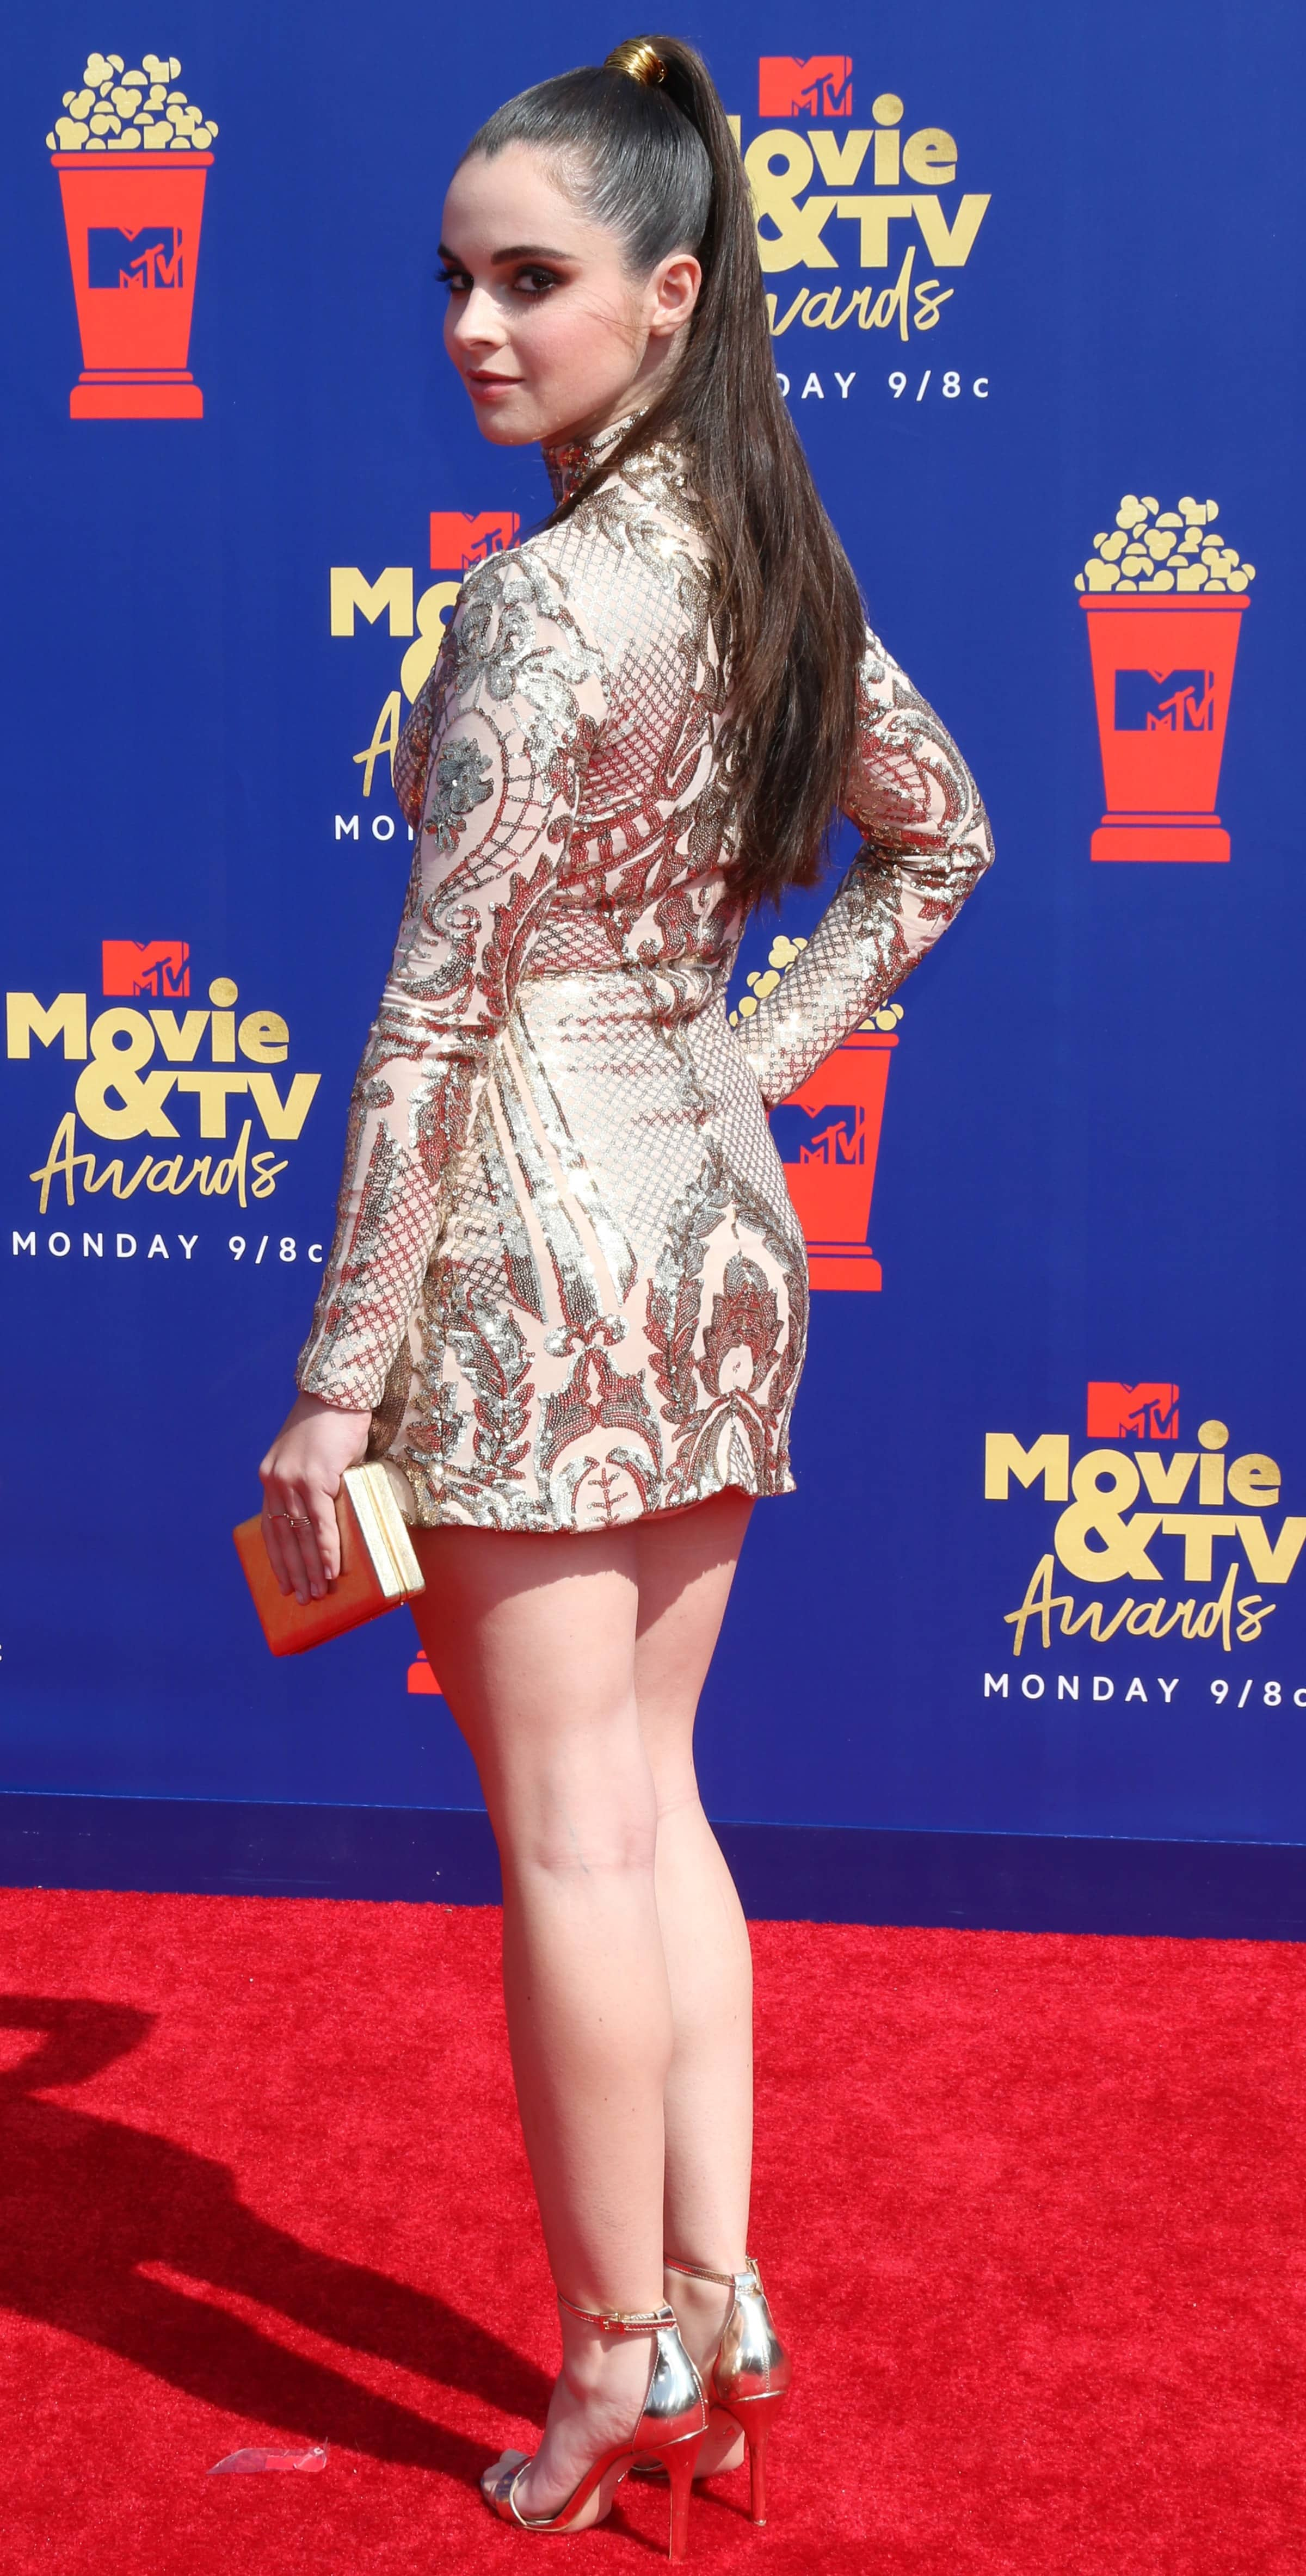 Vanessa Marano flaunted her legs in a gold sequined mini dress by Kimberly Parker